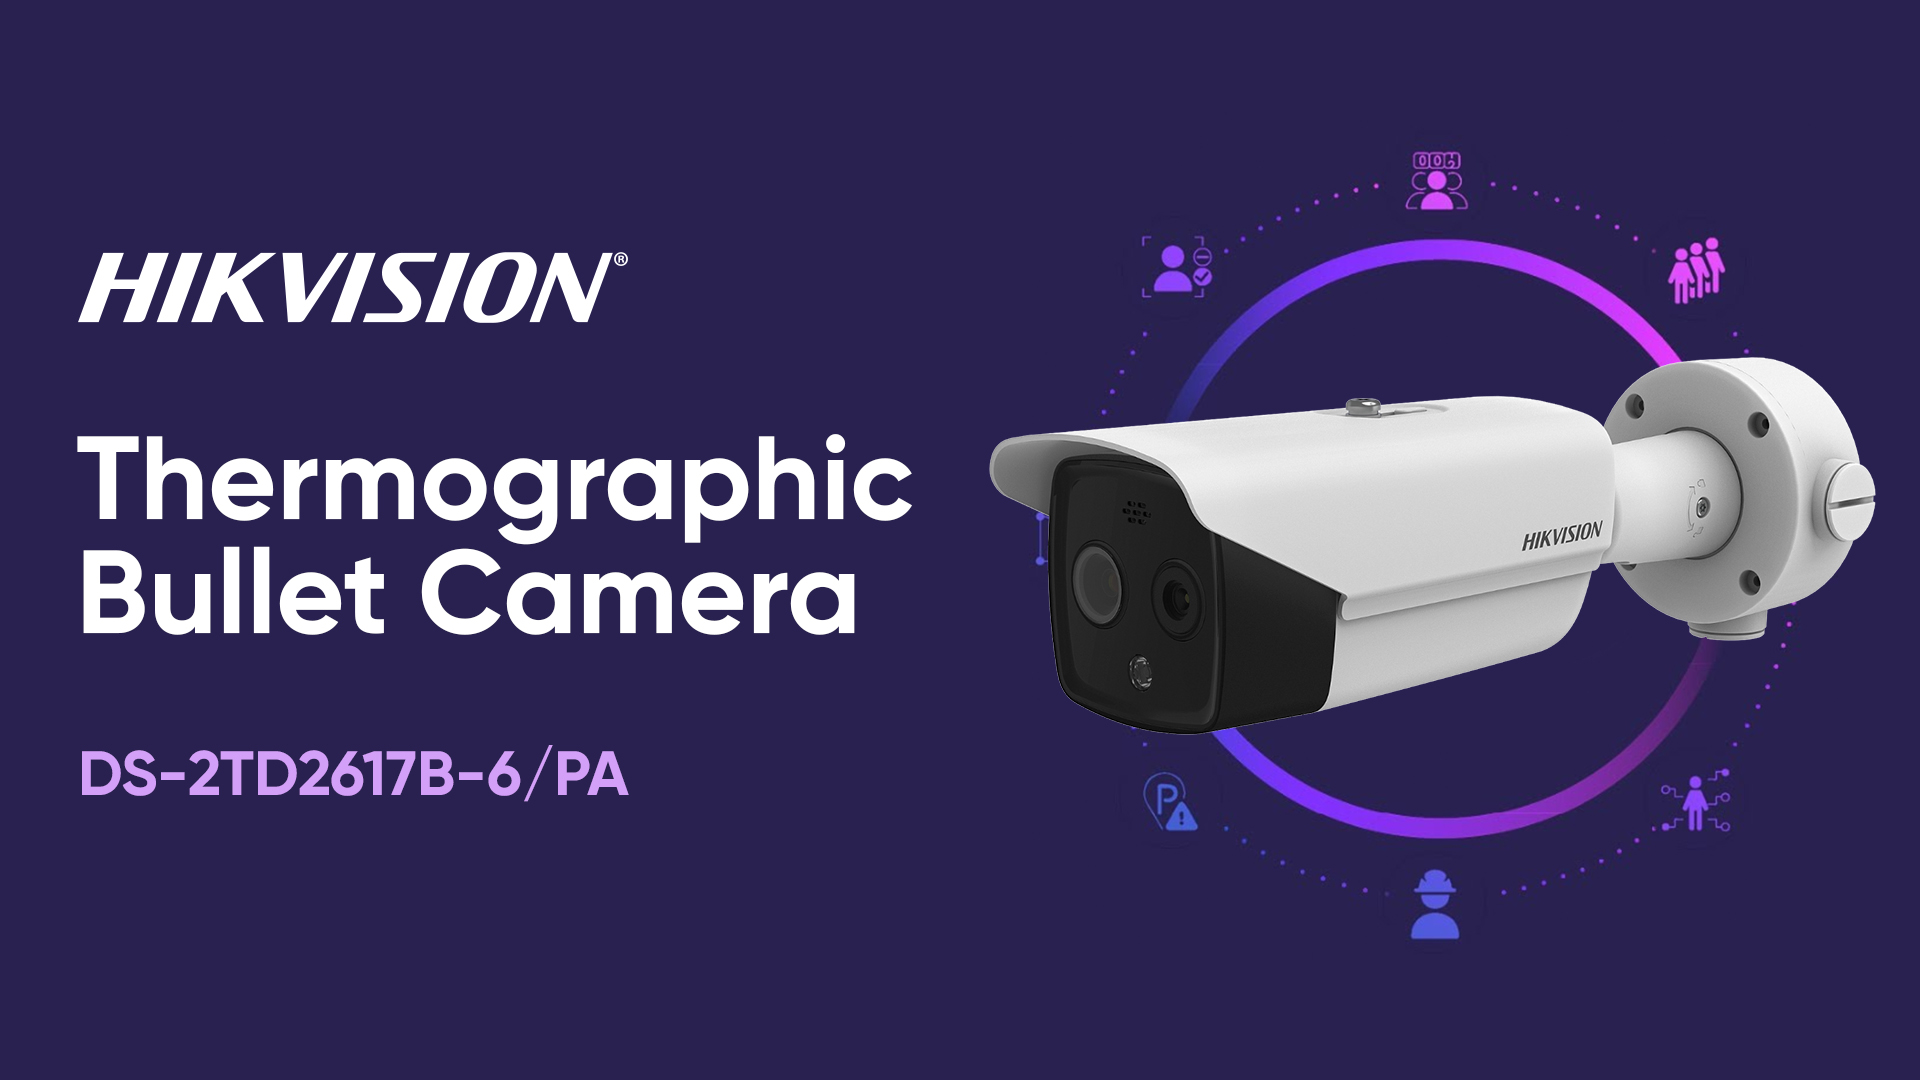 Hikvision Thermographic Bullet Camera